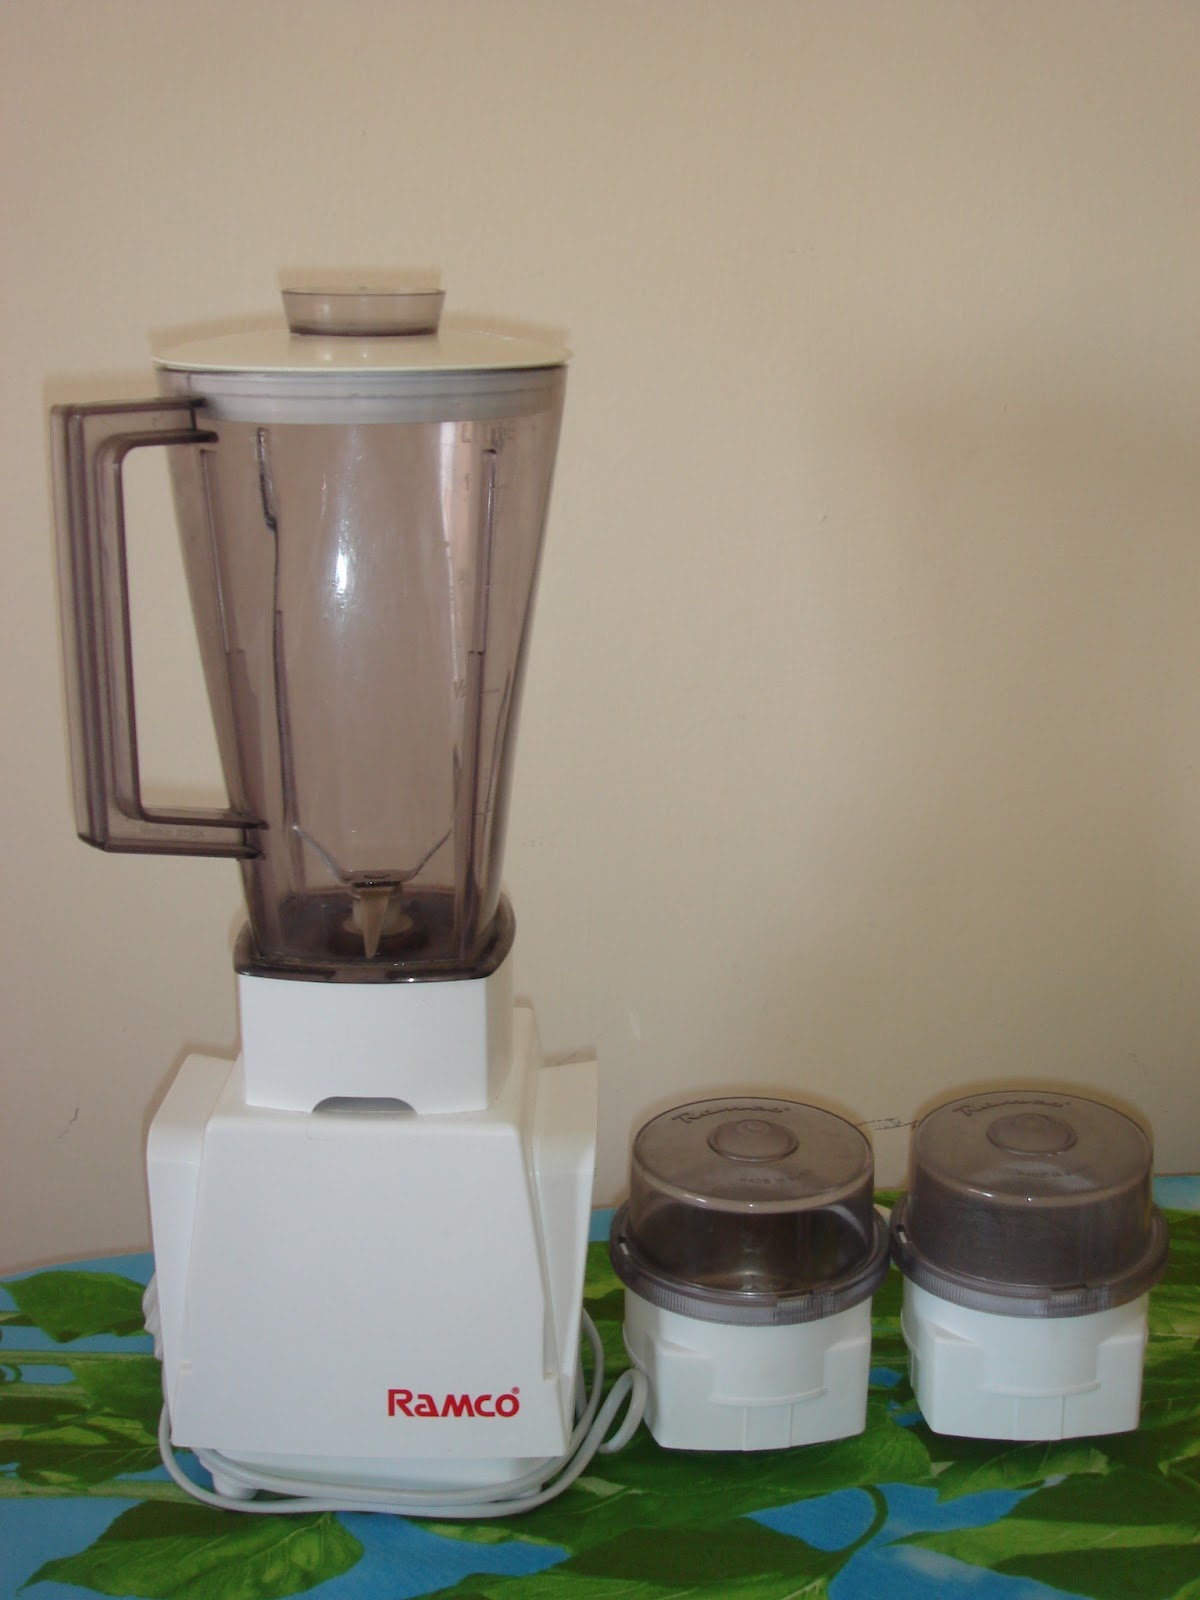 Fan Mixer Grinder Speed Control By Tv Remote